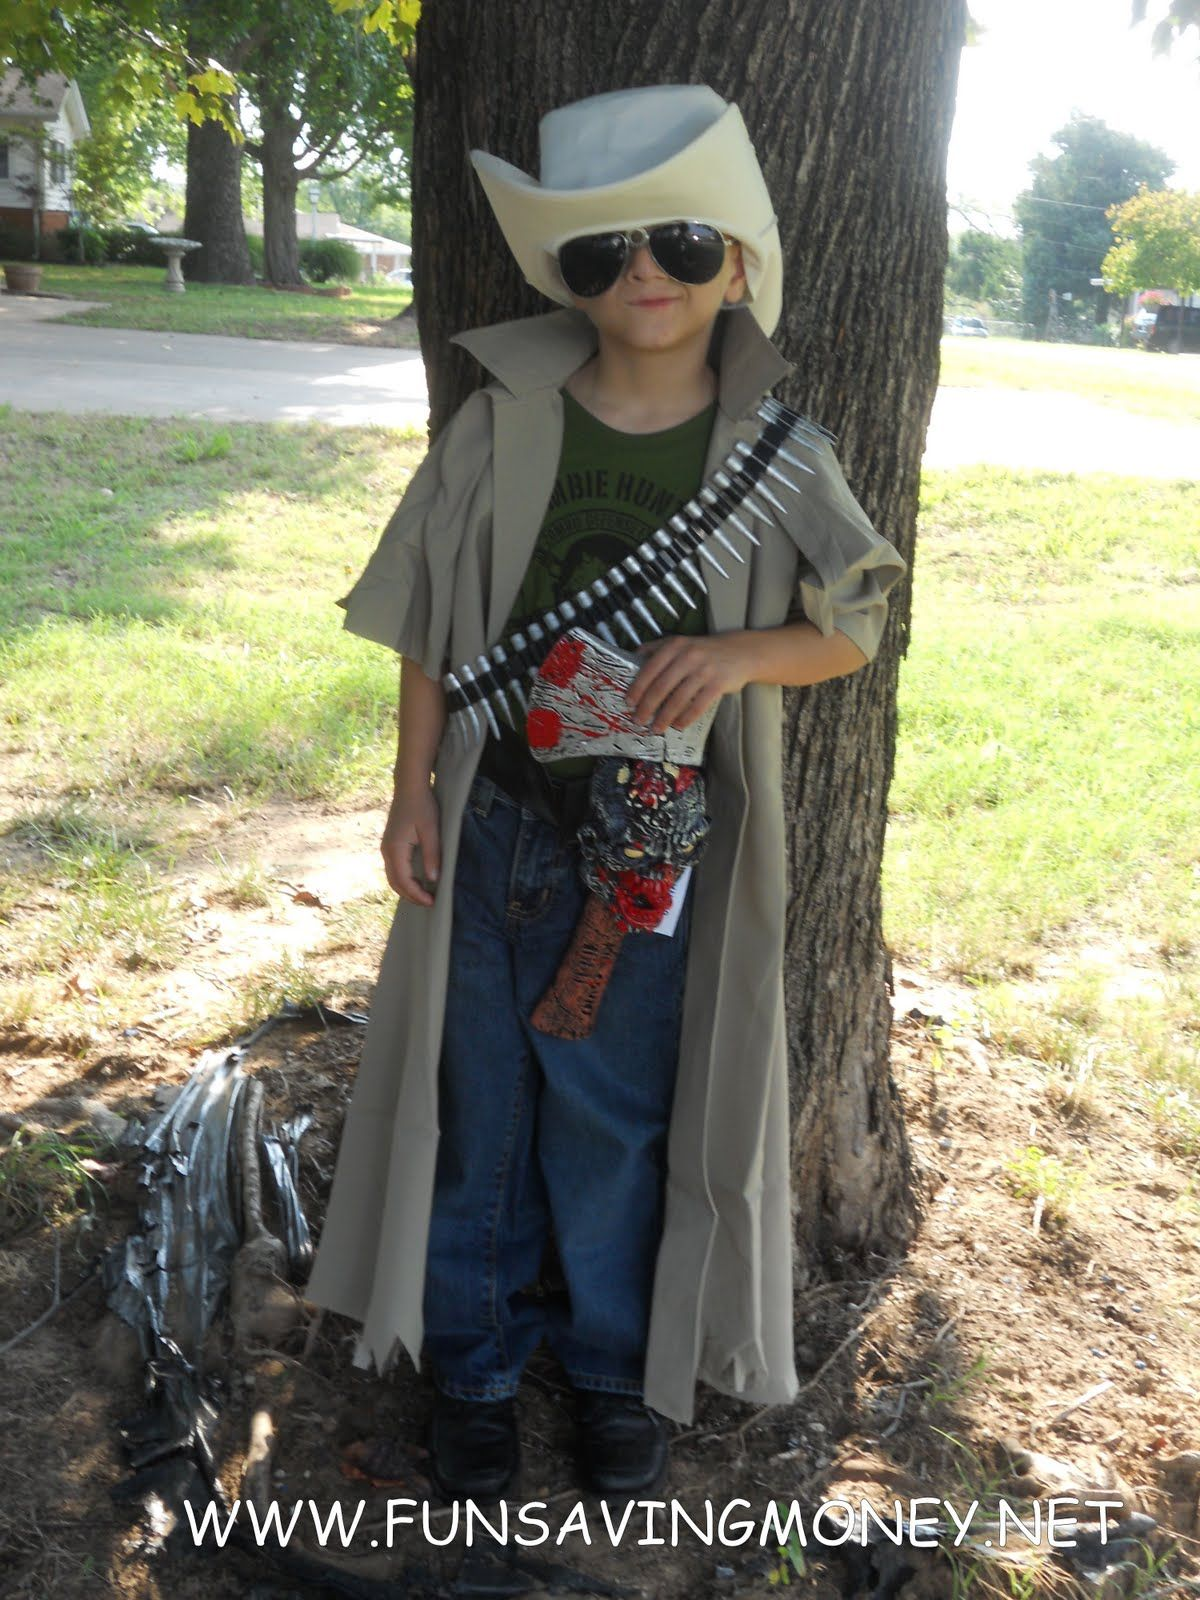 Cool Halloween Costumes Tween Boys //greathalloweencostumes.org/ & Cool Halloween Costumes Tween Boys http://greathalloweencostumes.org ...